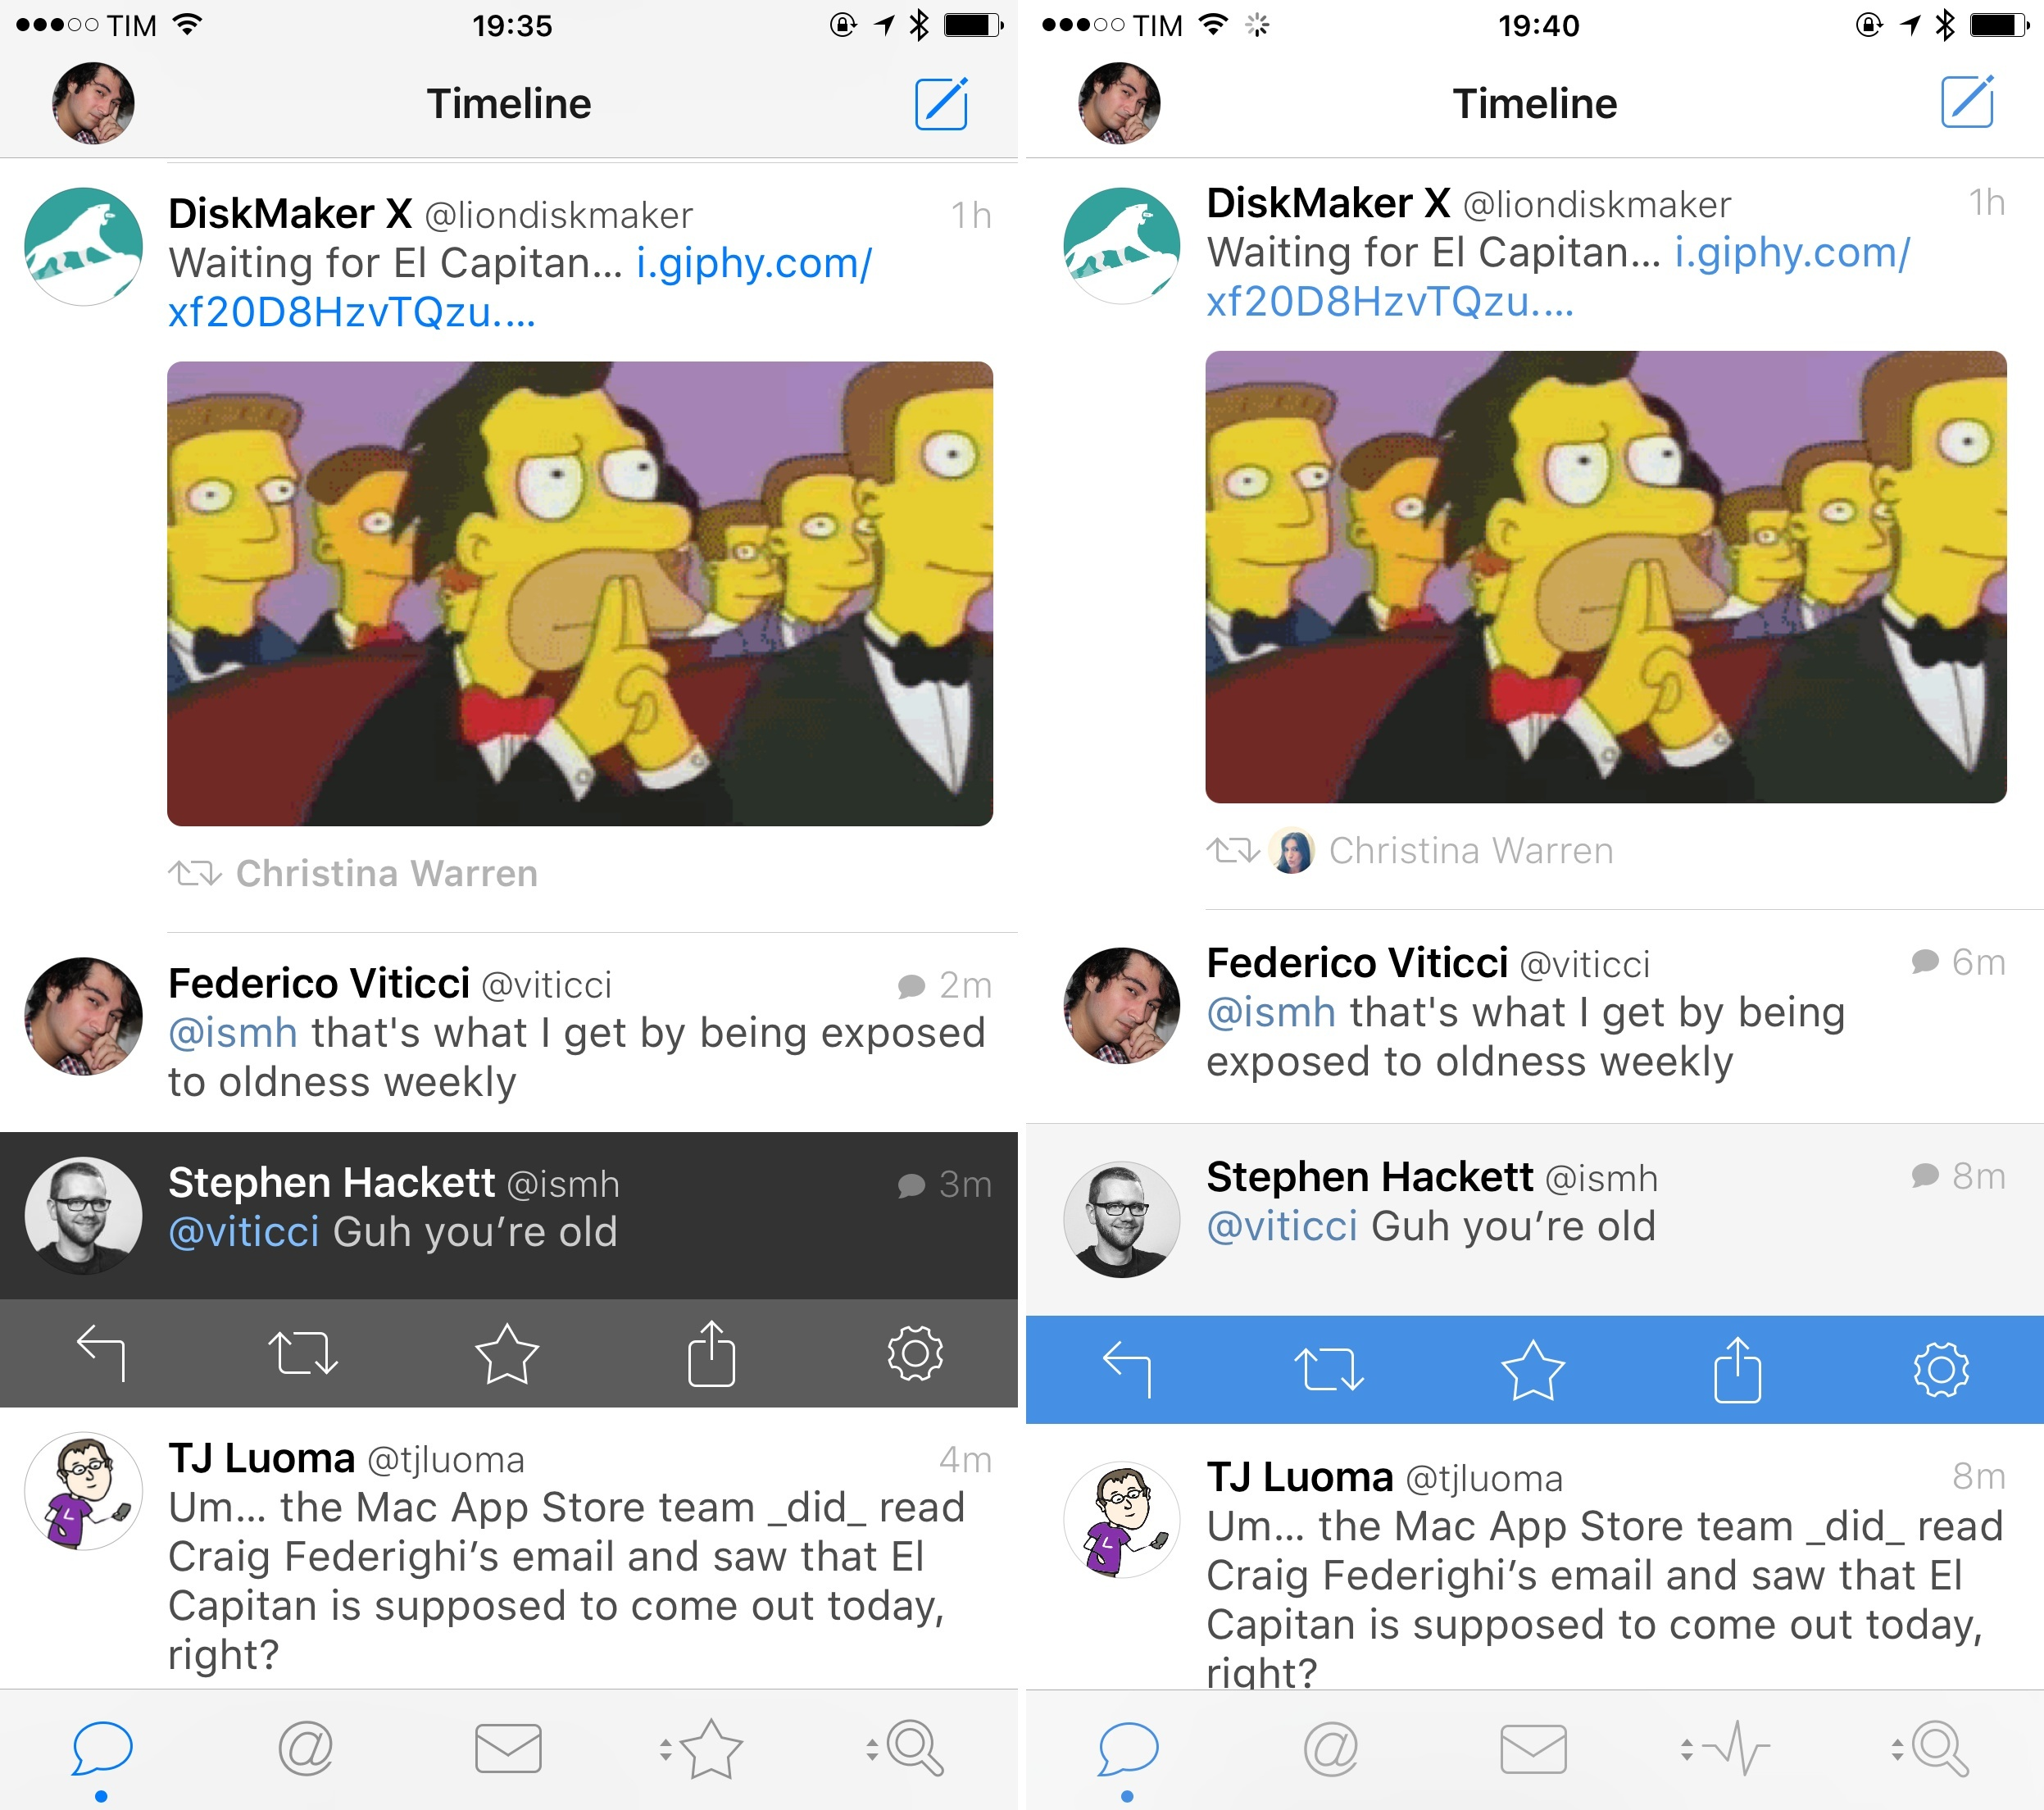 Left: Tweetbot 3.